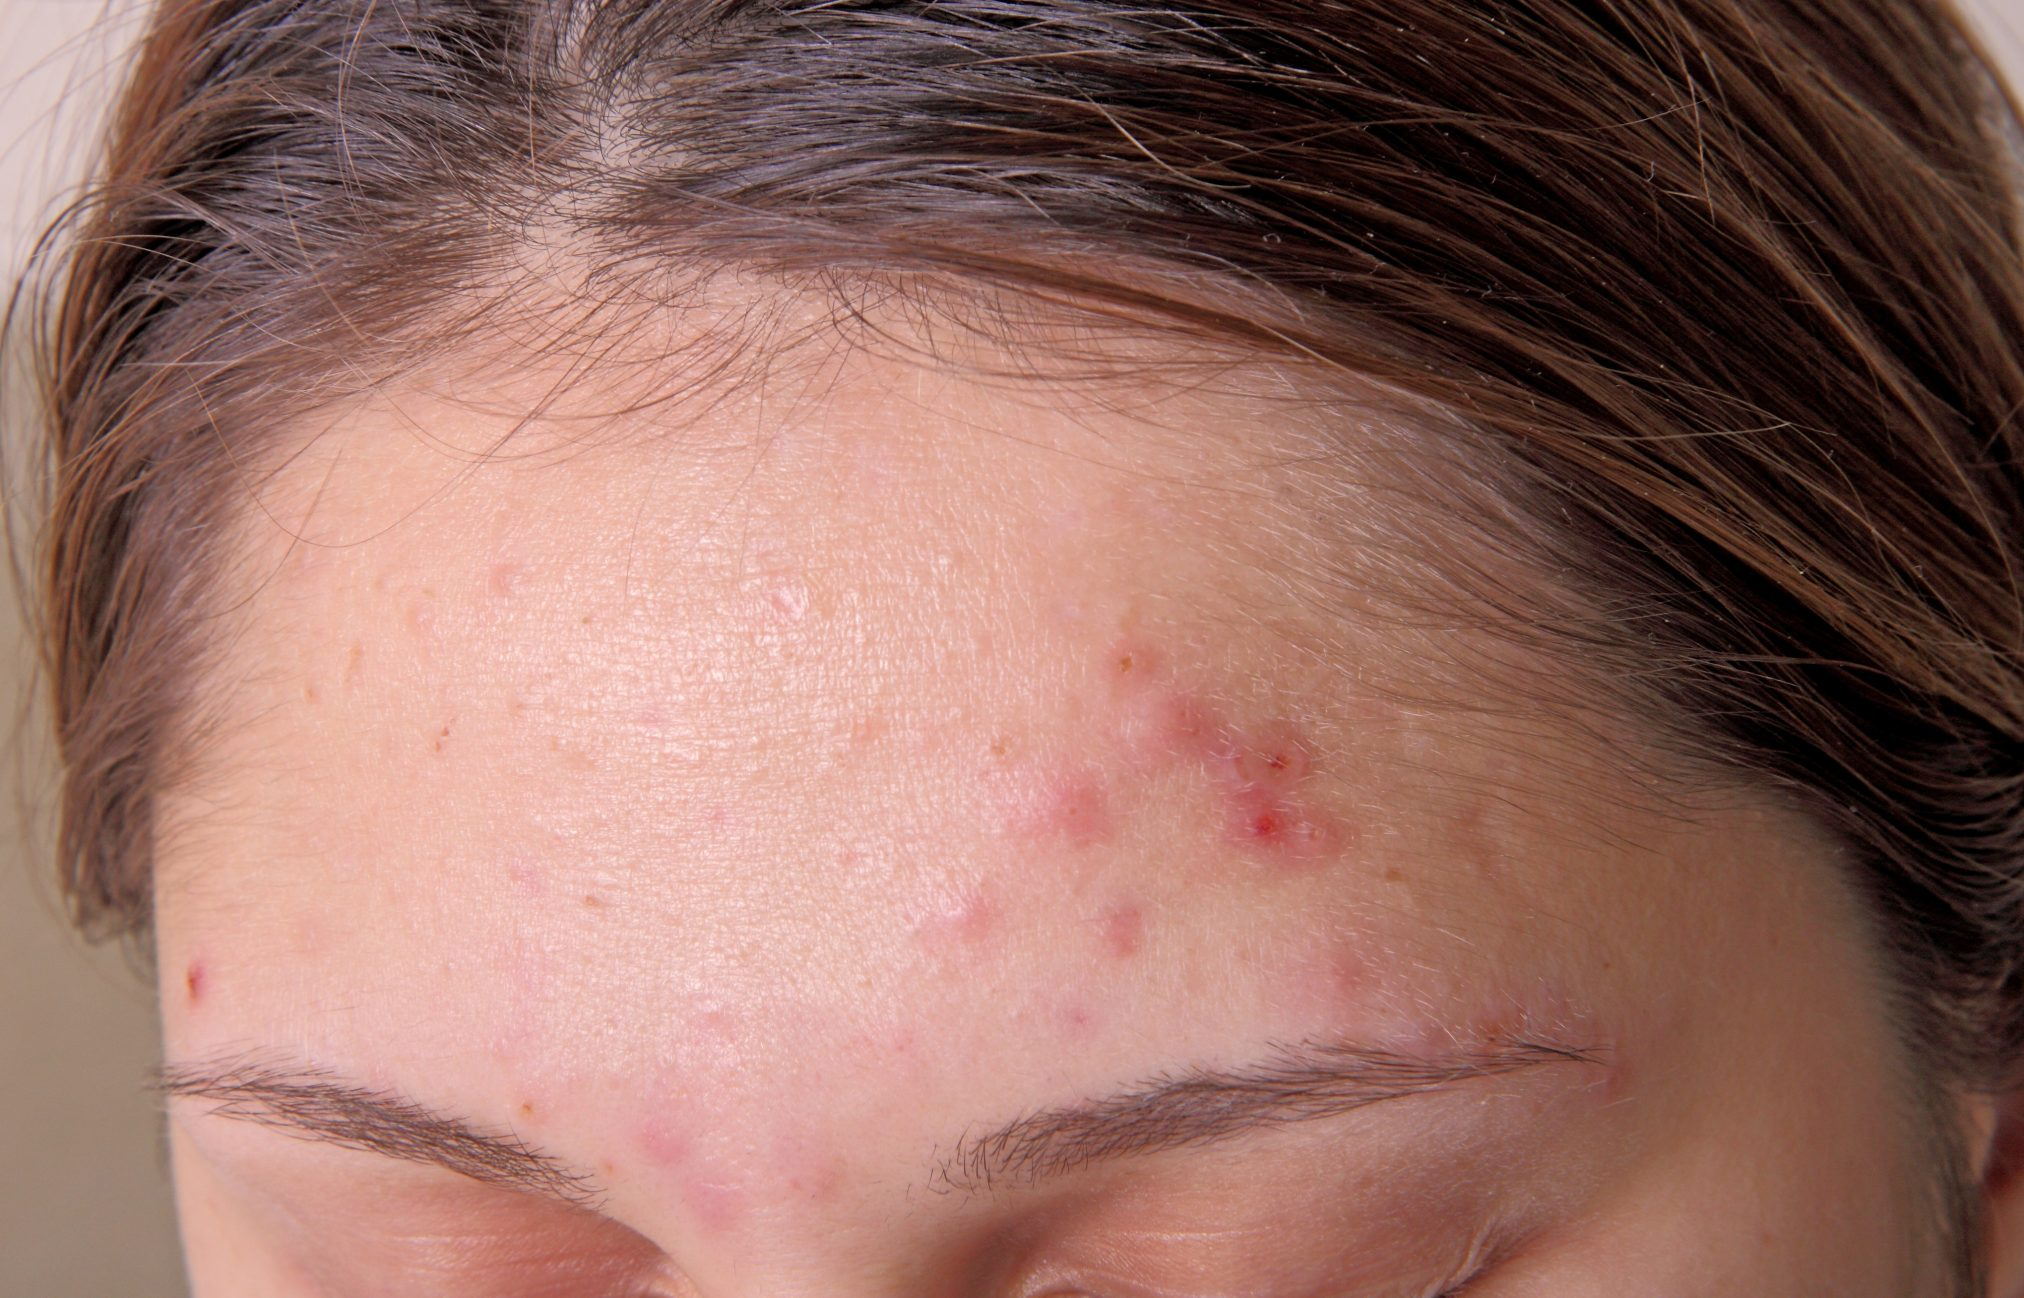 forehead with acne pimples